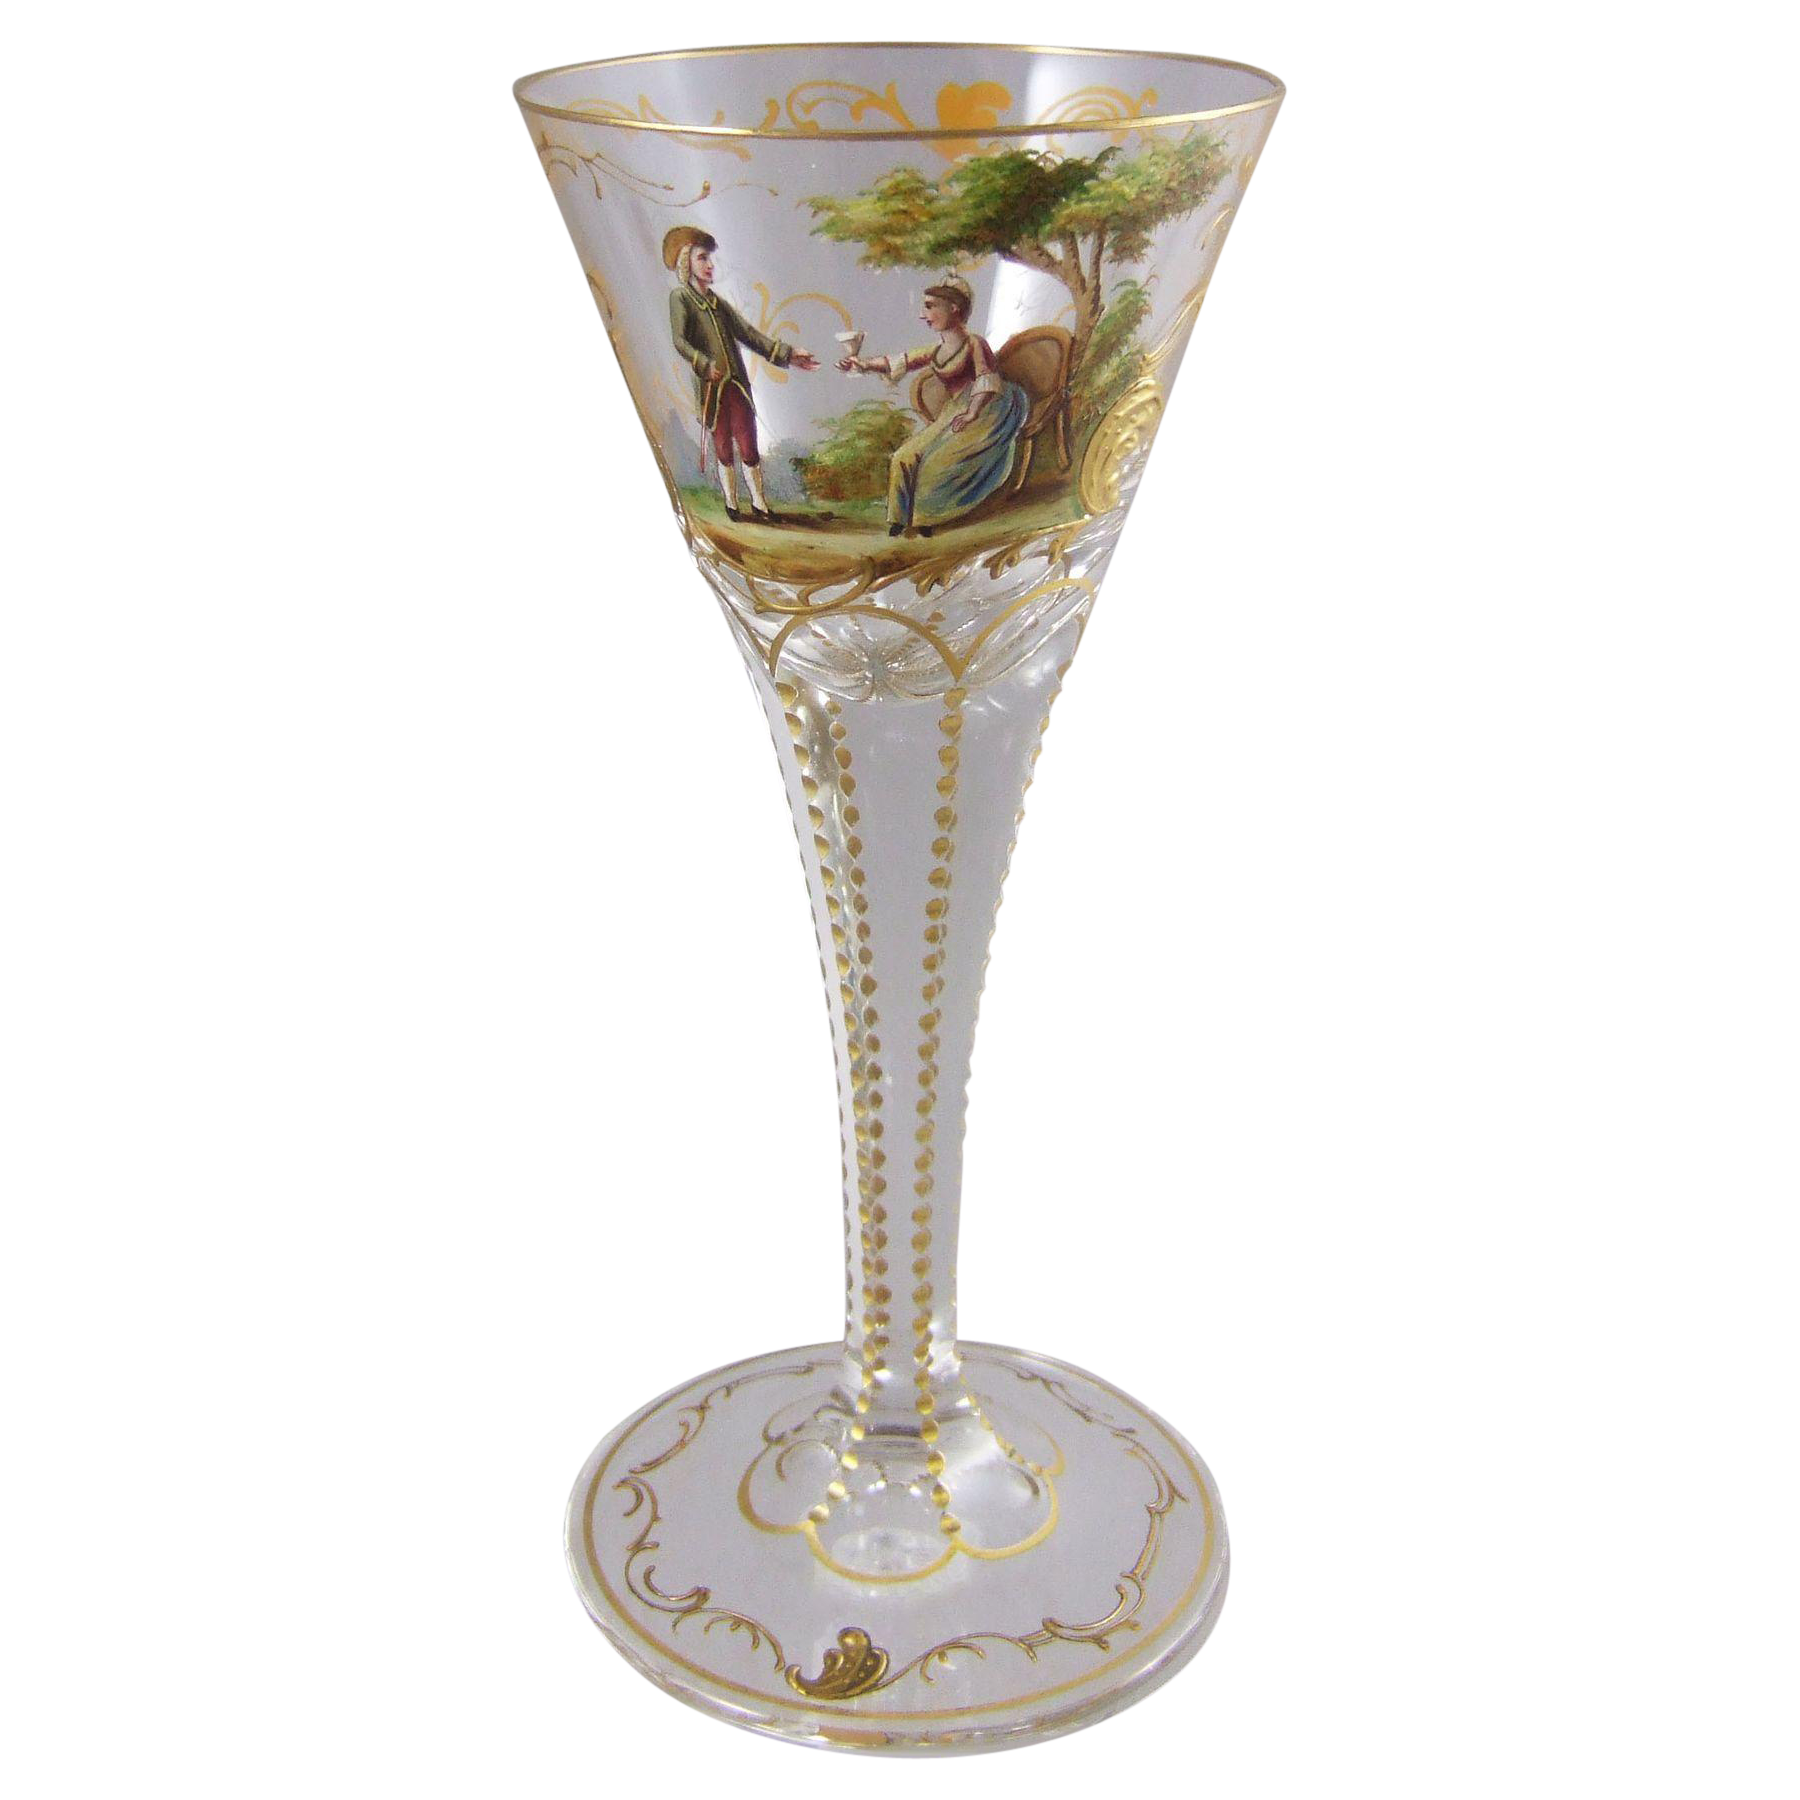 Lobmeyr Rococo Enameled Goblet with 18th Century Courting Couple